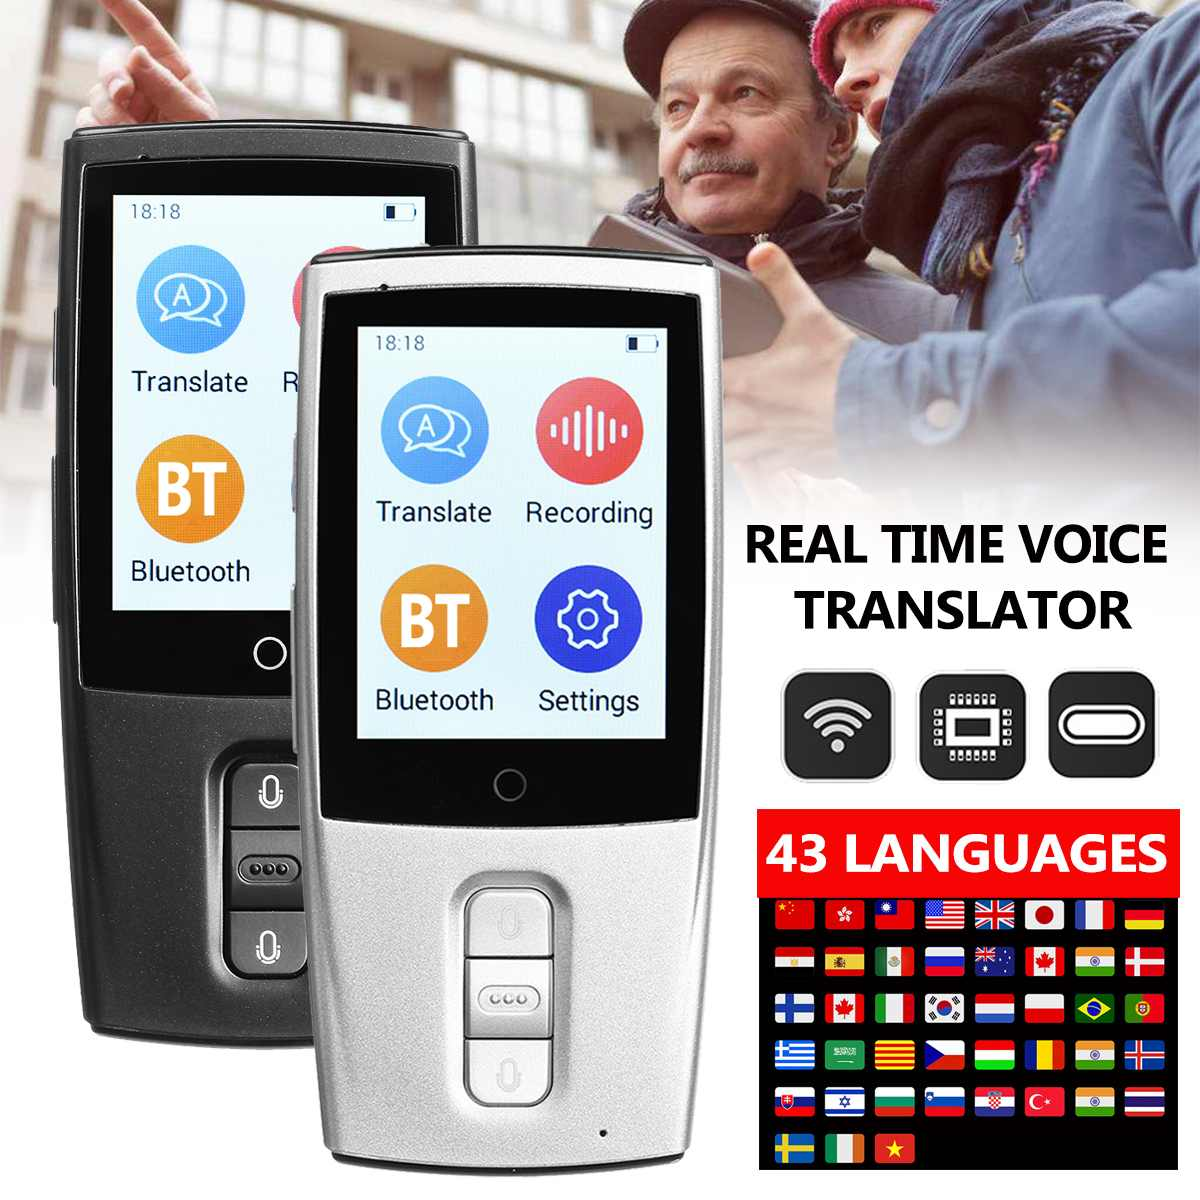 Portable Smart Voice Translator Two-Way Real Time WiFi 43 Languages Instant Traductor Translation for Learning Meeting BusinessPortable Smart Voice Translator Two-Way Real Time WiFi 43 Languages Instant Traductor Translation for Learning Meeting Business